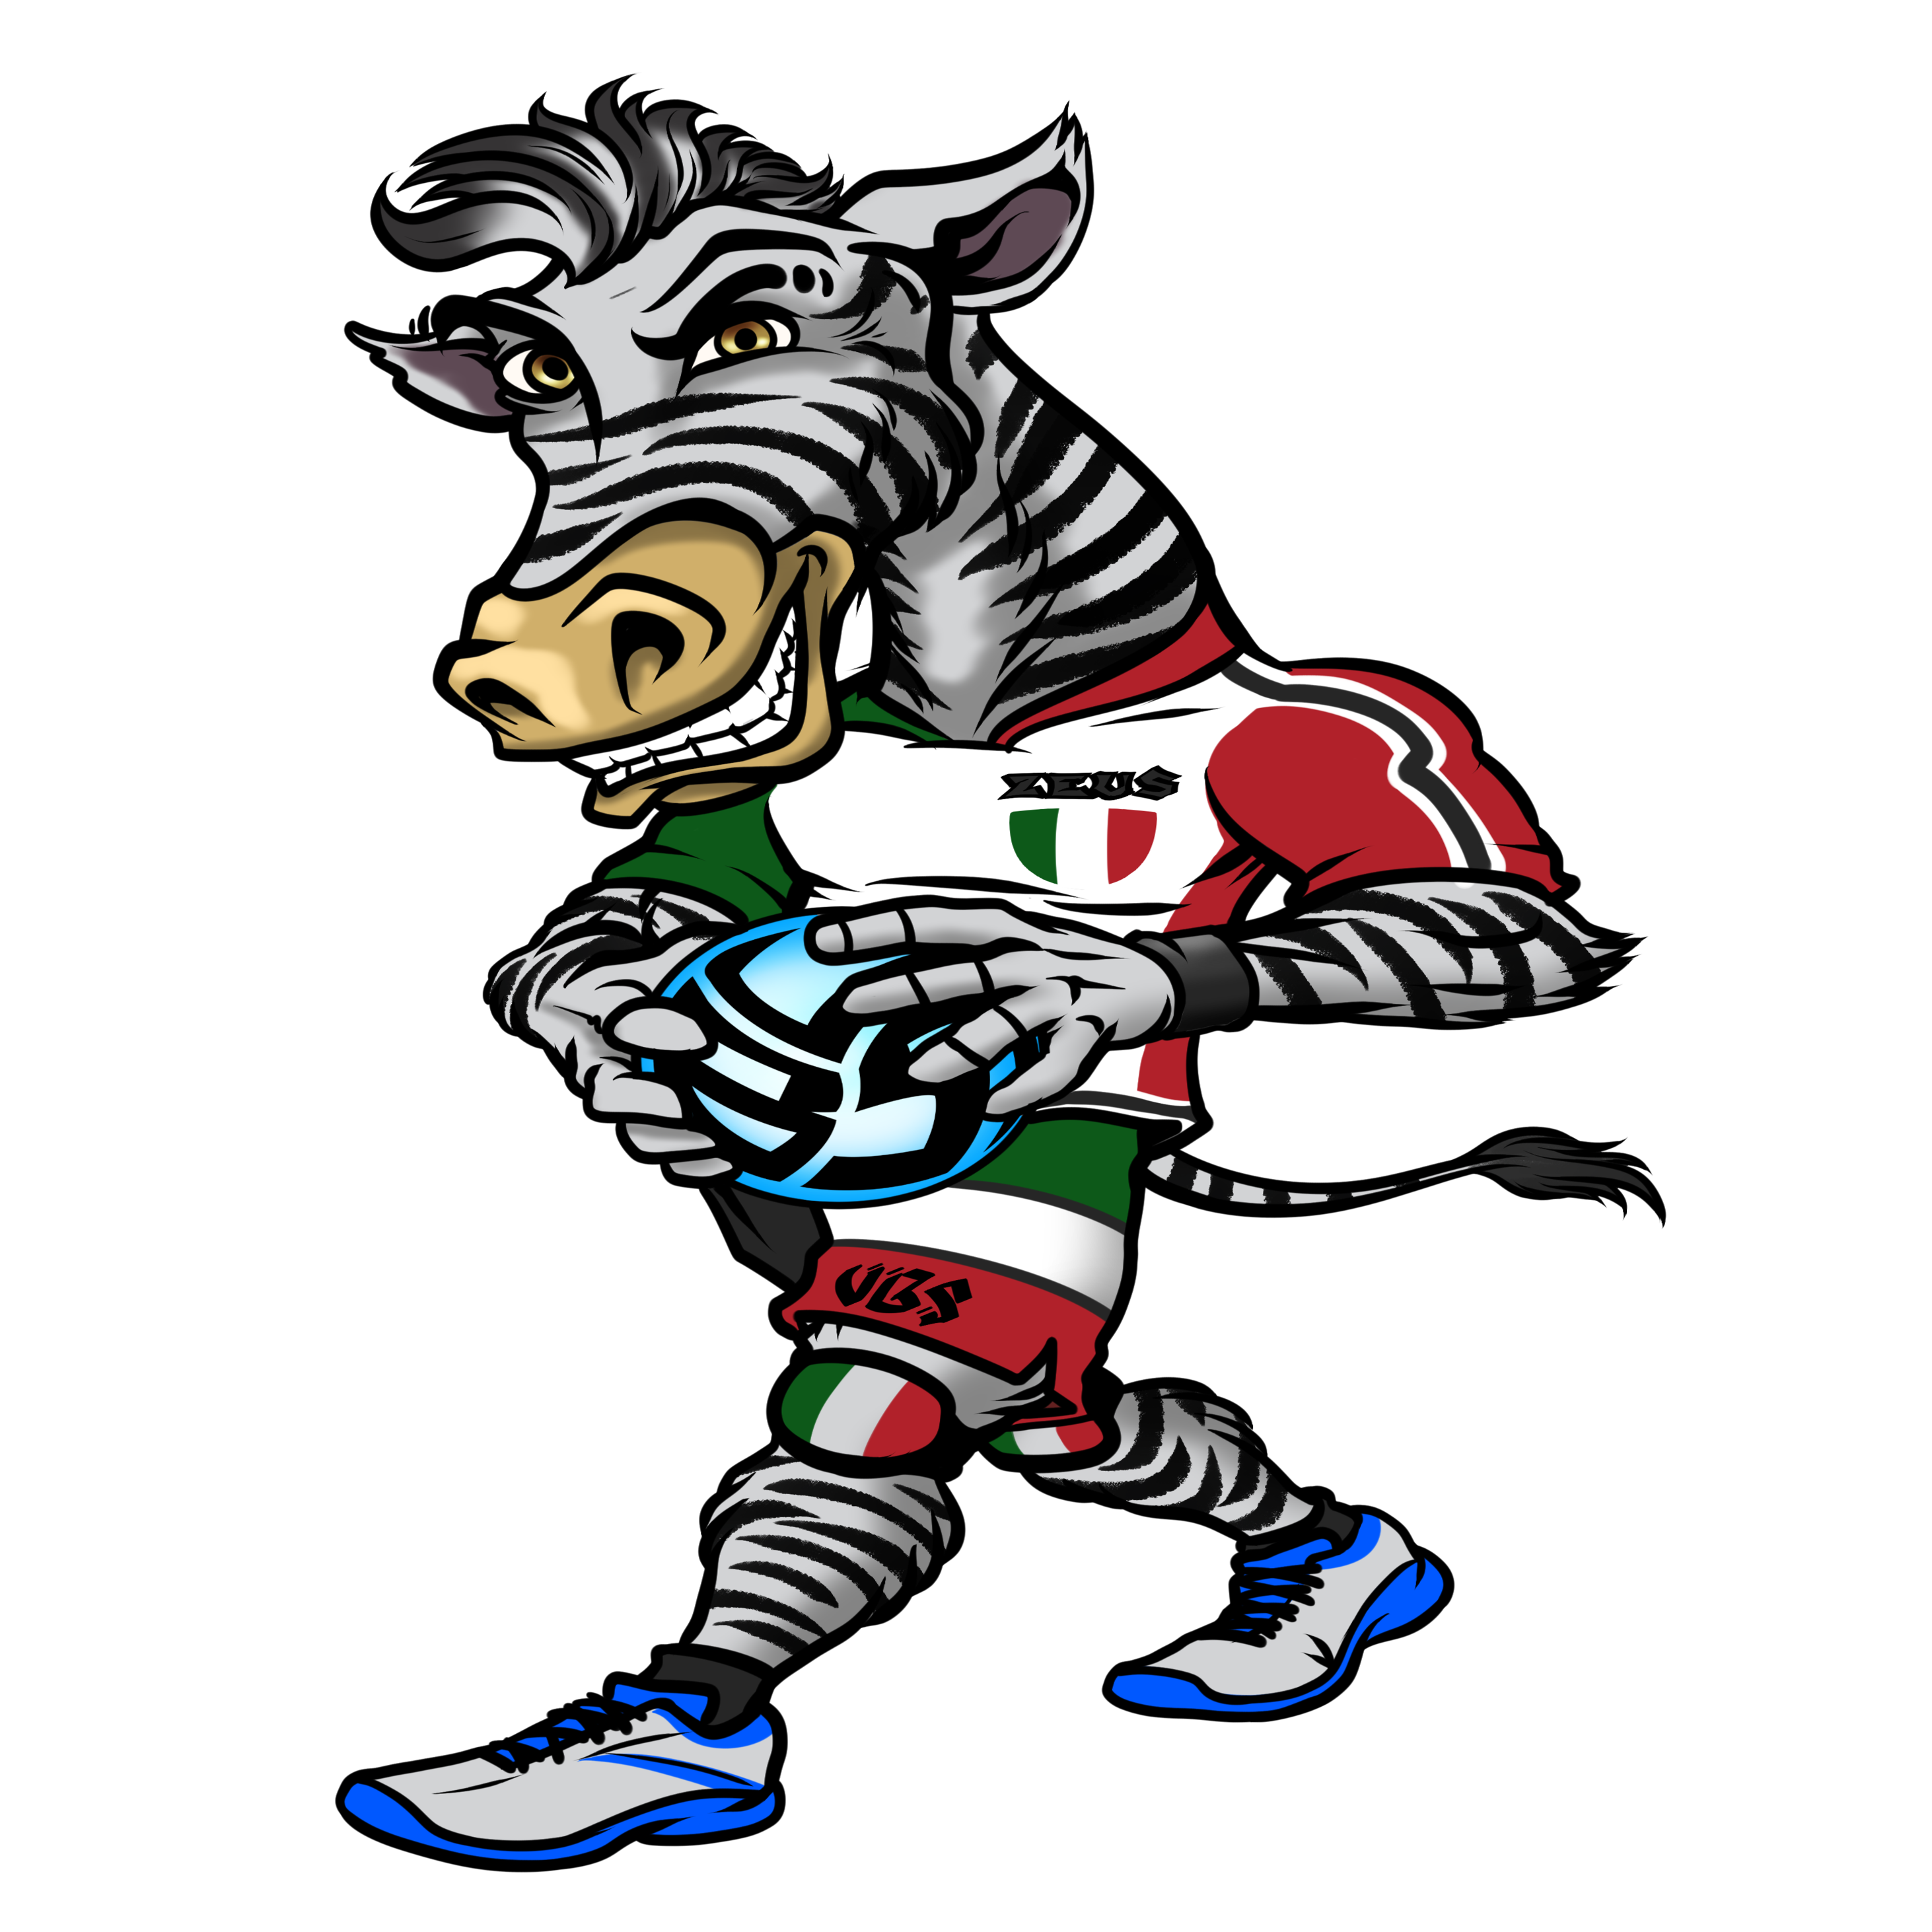 Animal T Shirt Ideas For Volleyball Players: Meet Zeus the Volleybragswag Zebra - Left Side Hitter All VBS Beast First Team wearing his Italian Flag inspired uniform